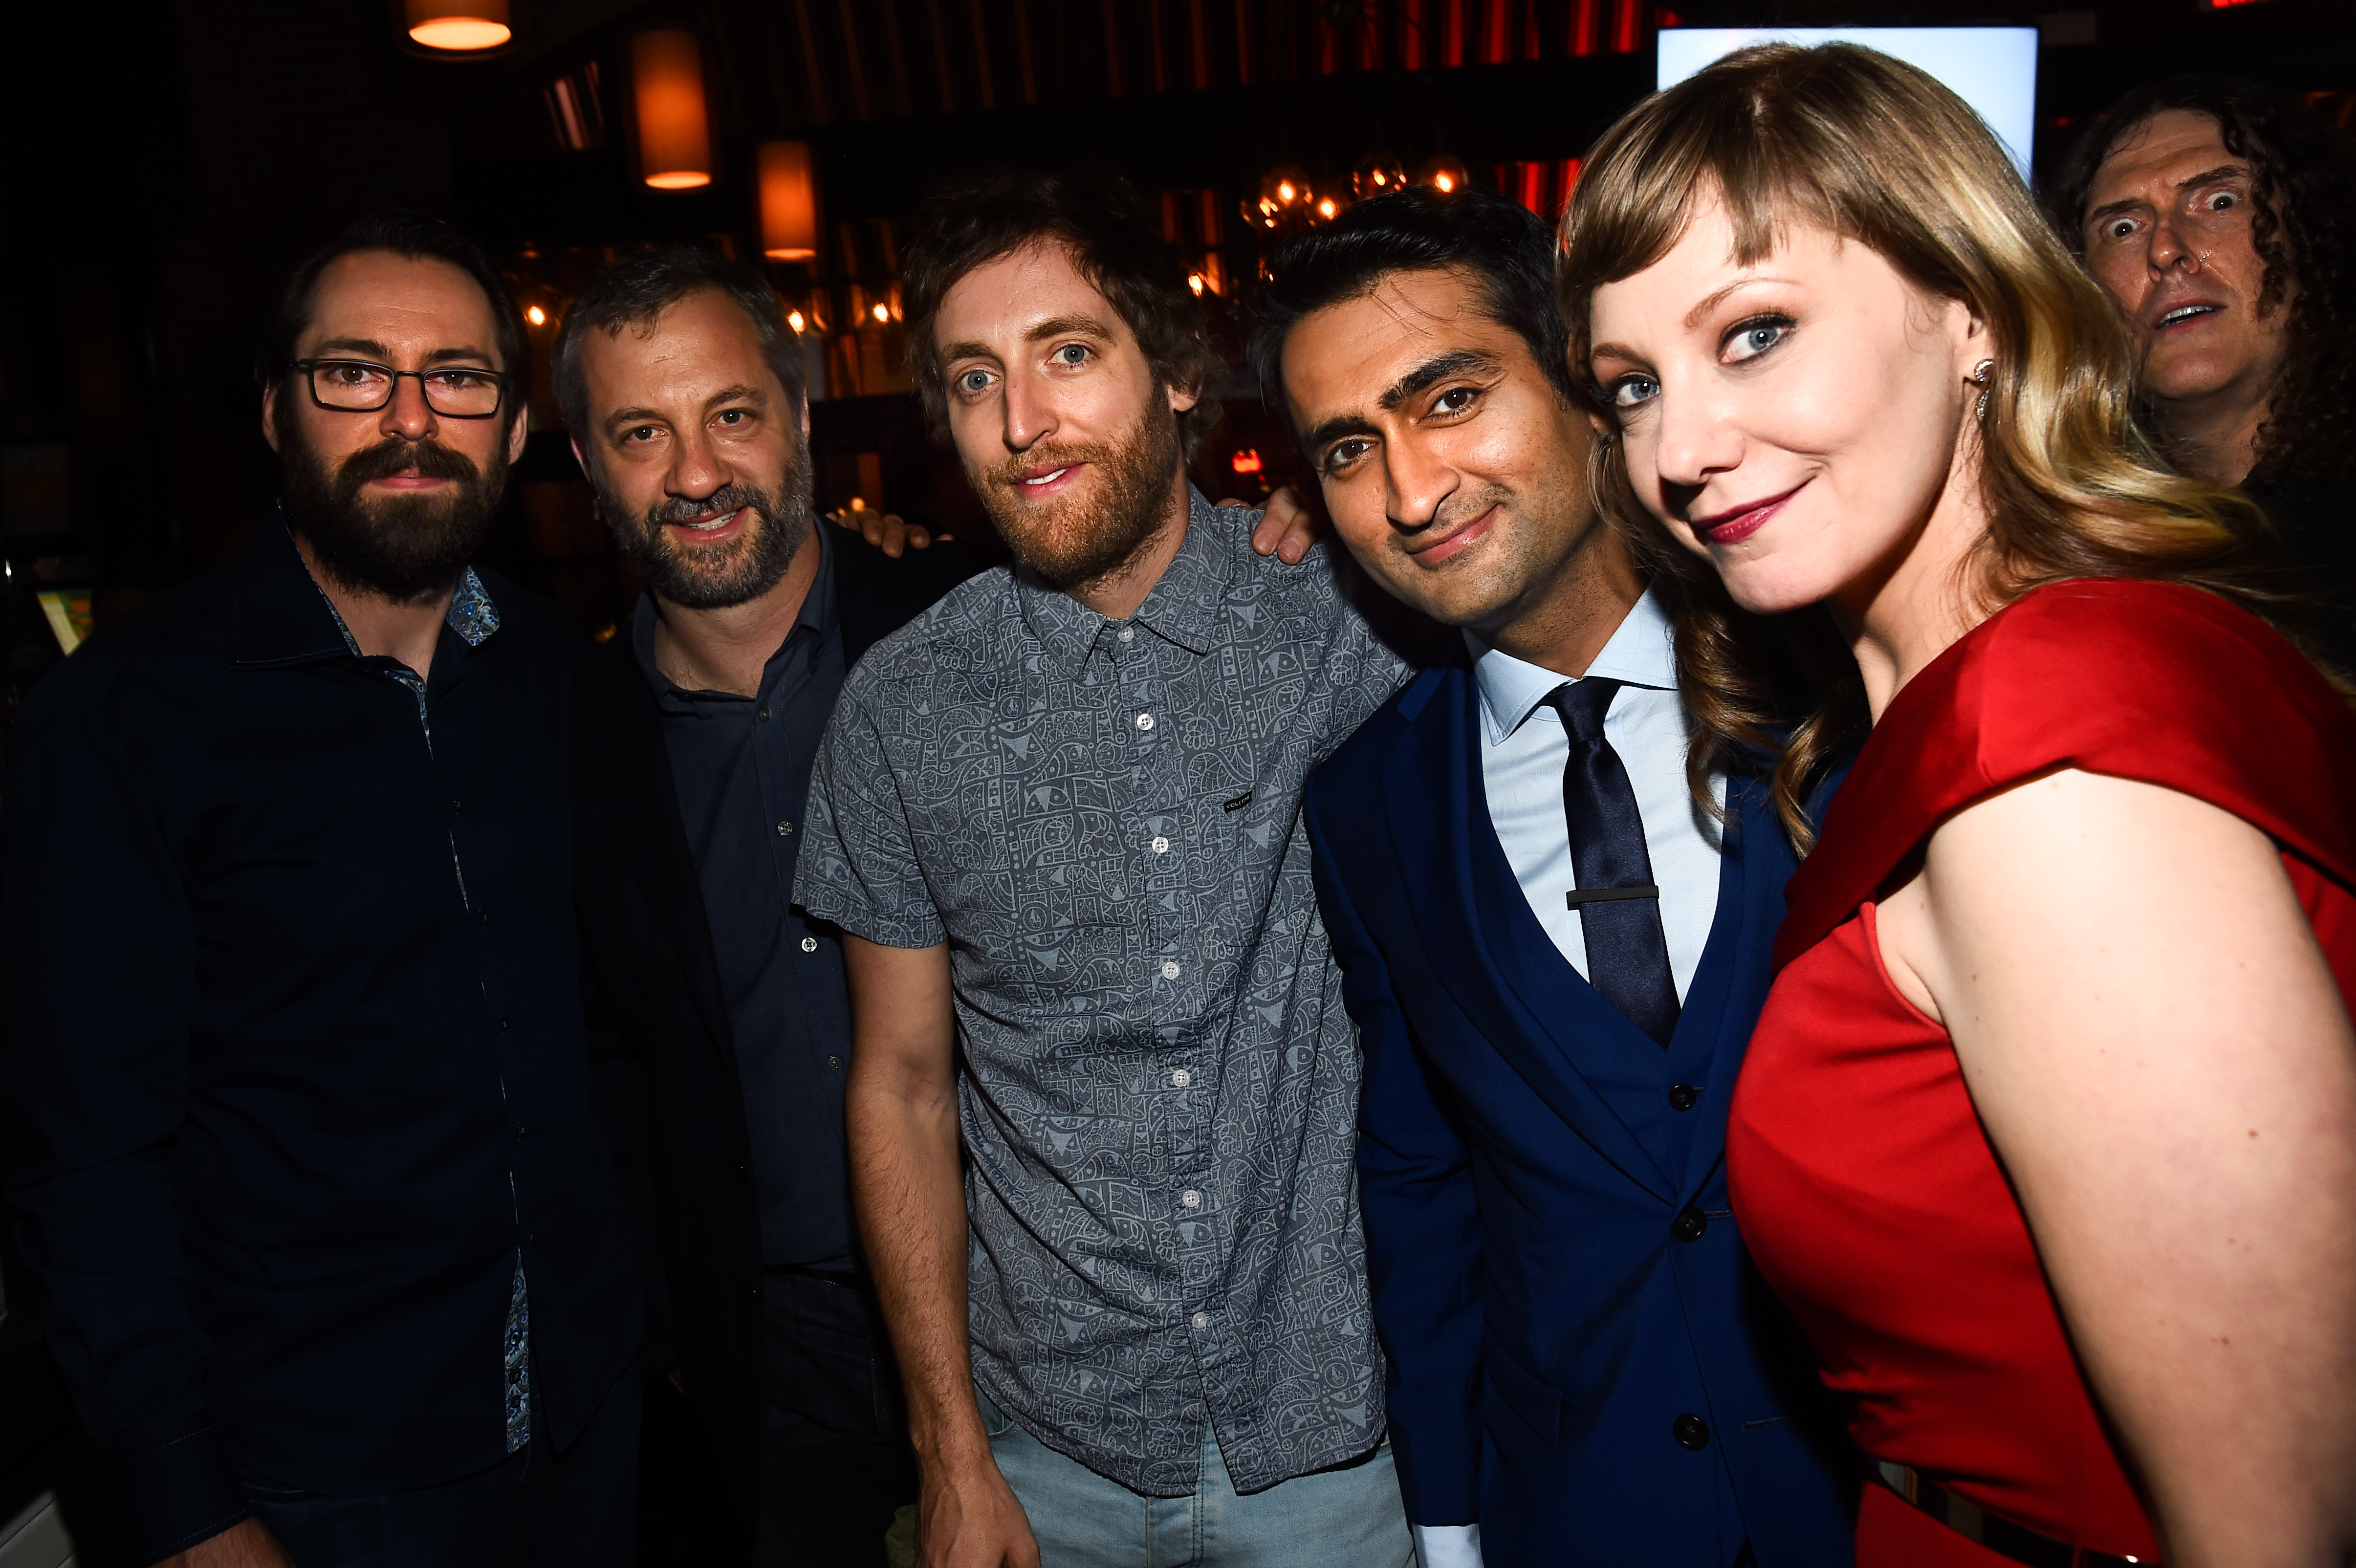 Martin Starr, Judd Apatow, Thomas Middleditch, Emily V. Gordon, Kumail Nanjiani and Weird Al Yankovic'The Big Sick' film premiere, After Party, Los Angeles, USA - 12 June 2017